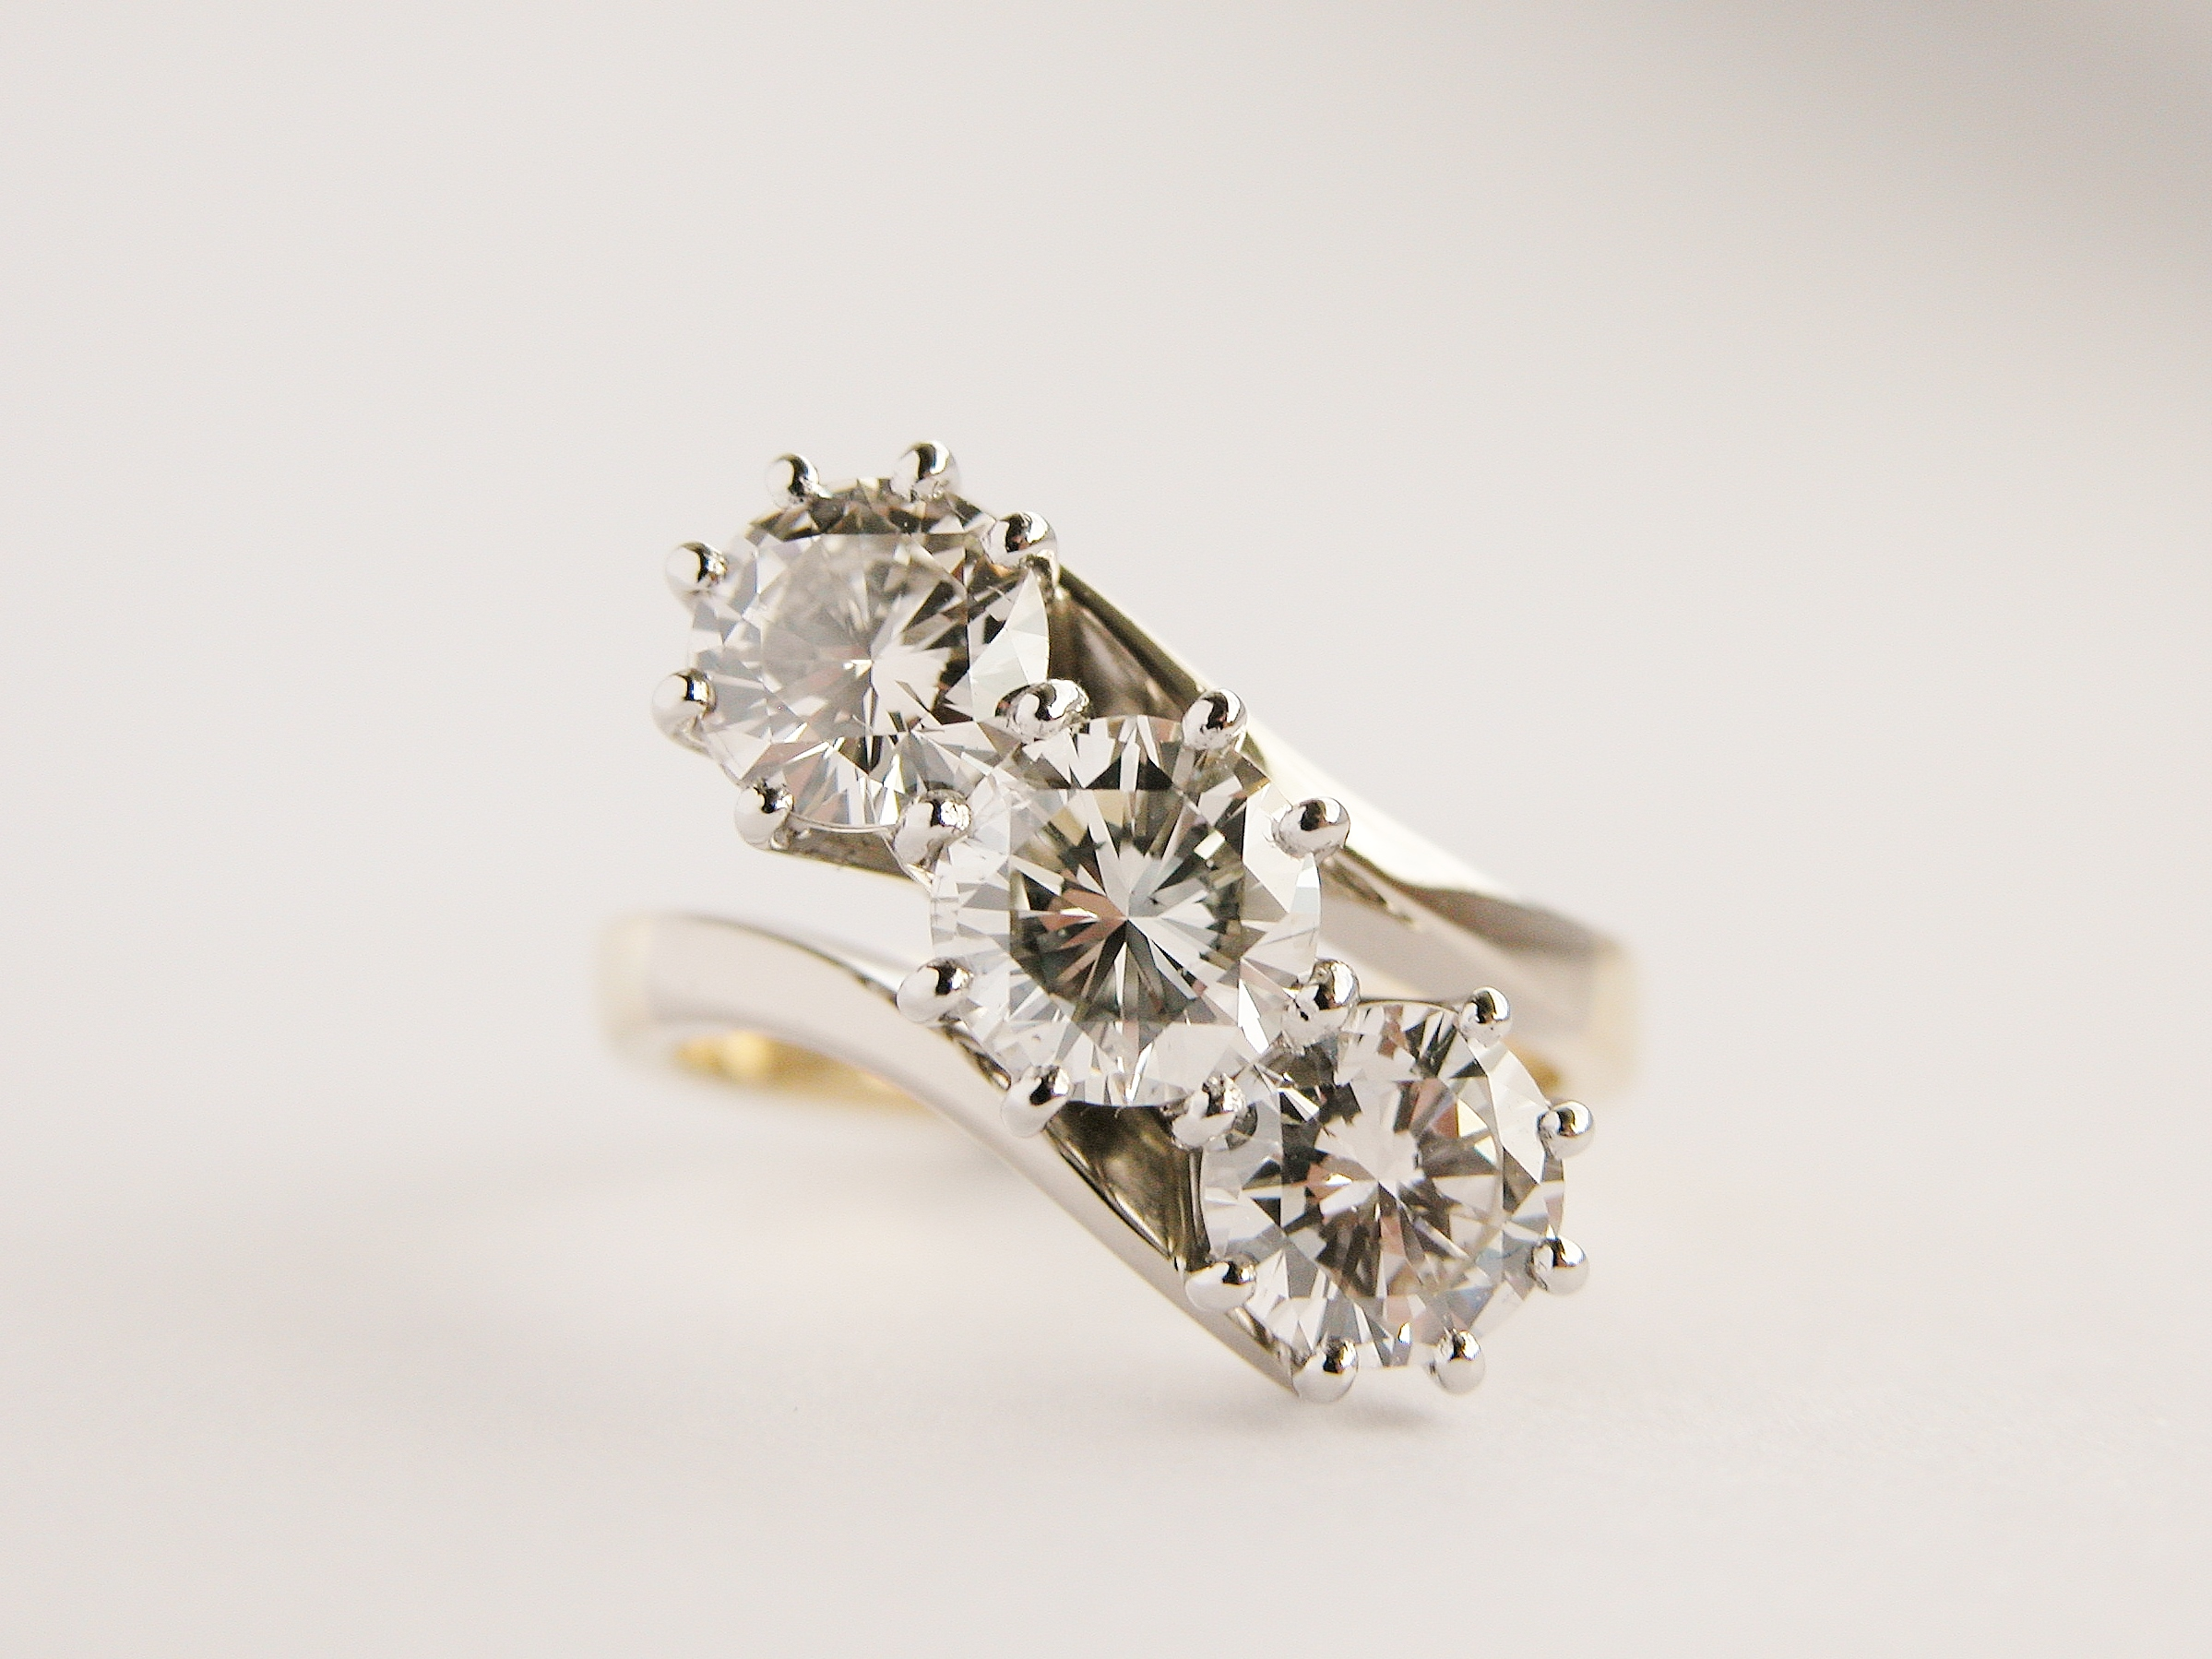 3 stone round brilliant cut diamond, straight cross-over style, right hand ring, mounted in 18ct. yellow gold and platinum.